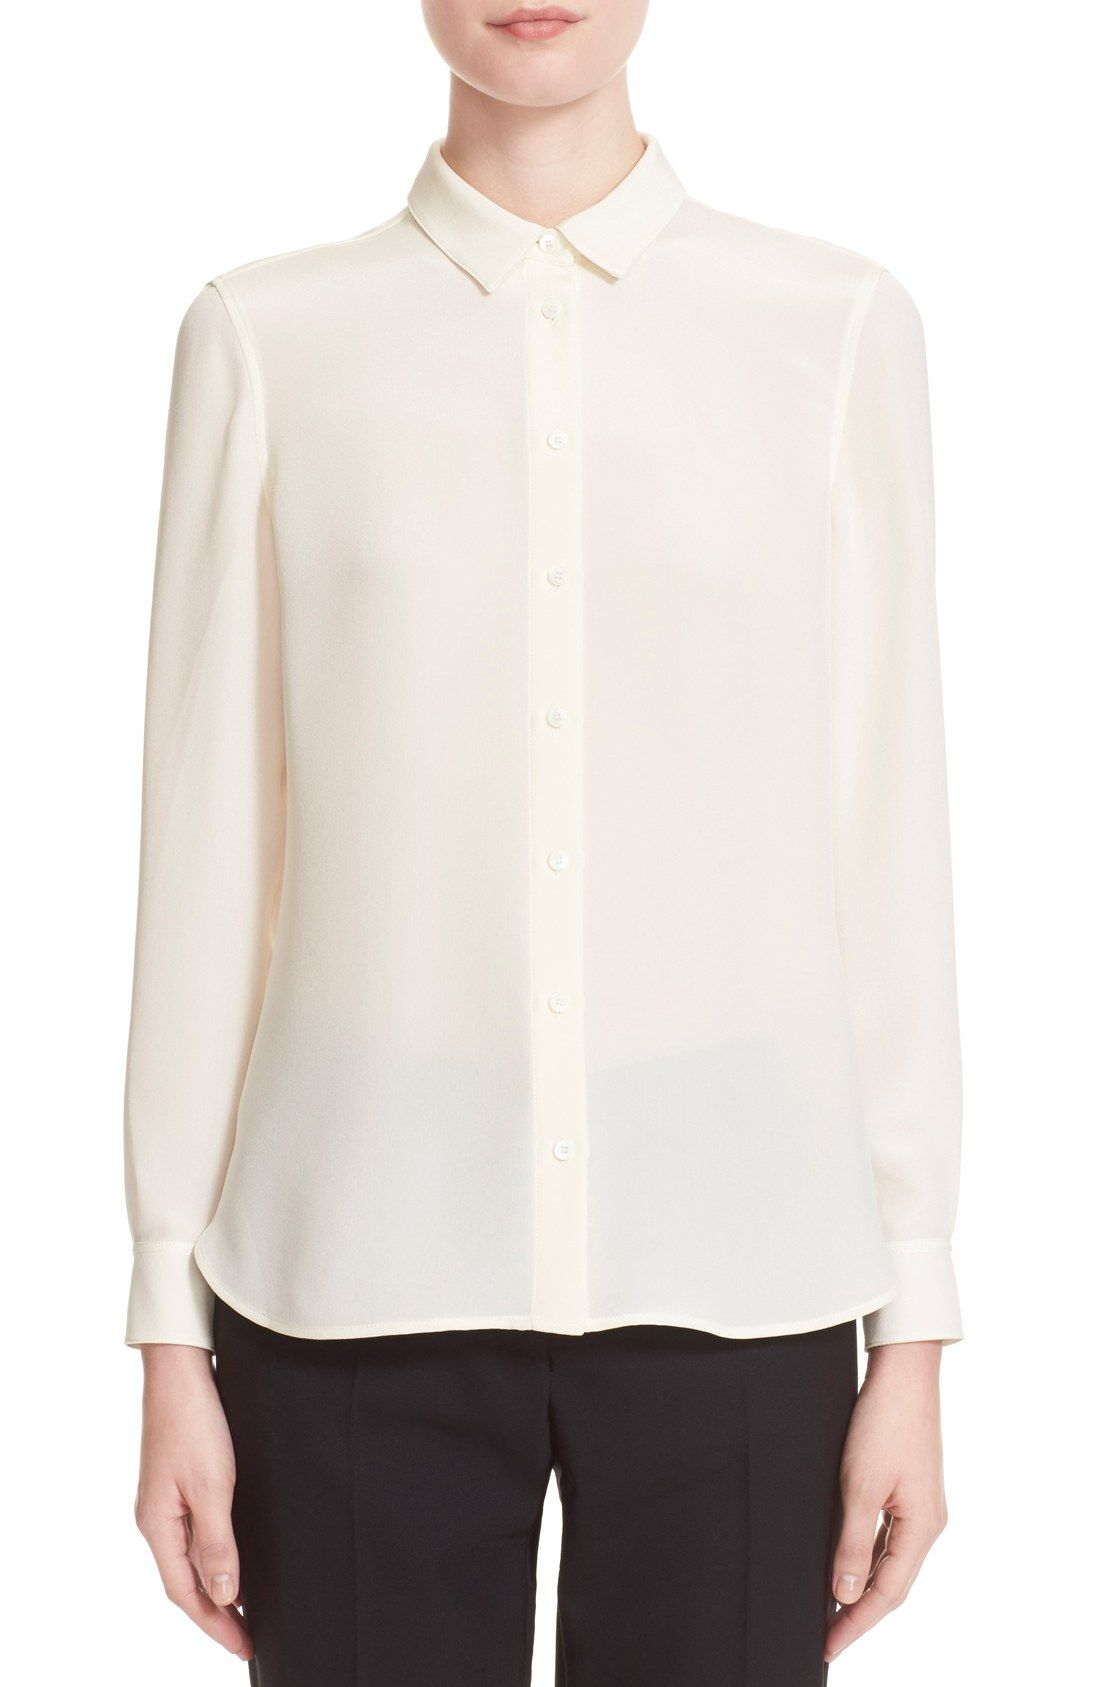 Burberry London Semi-Sheer Long Sleeve Blouse Free Shipping With Paypal CBKgTTmve3